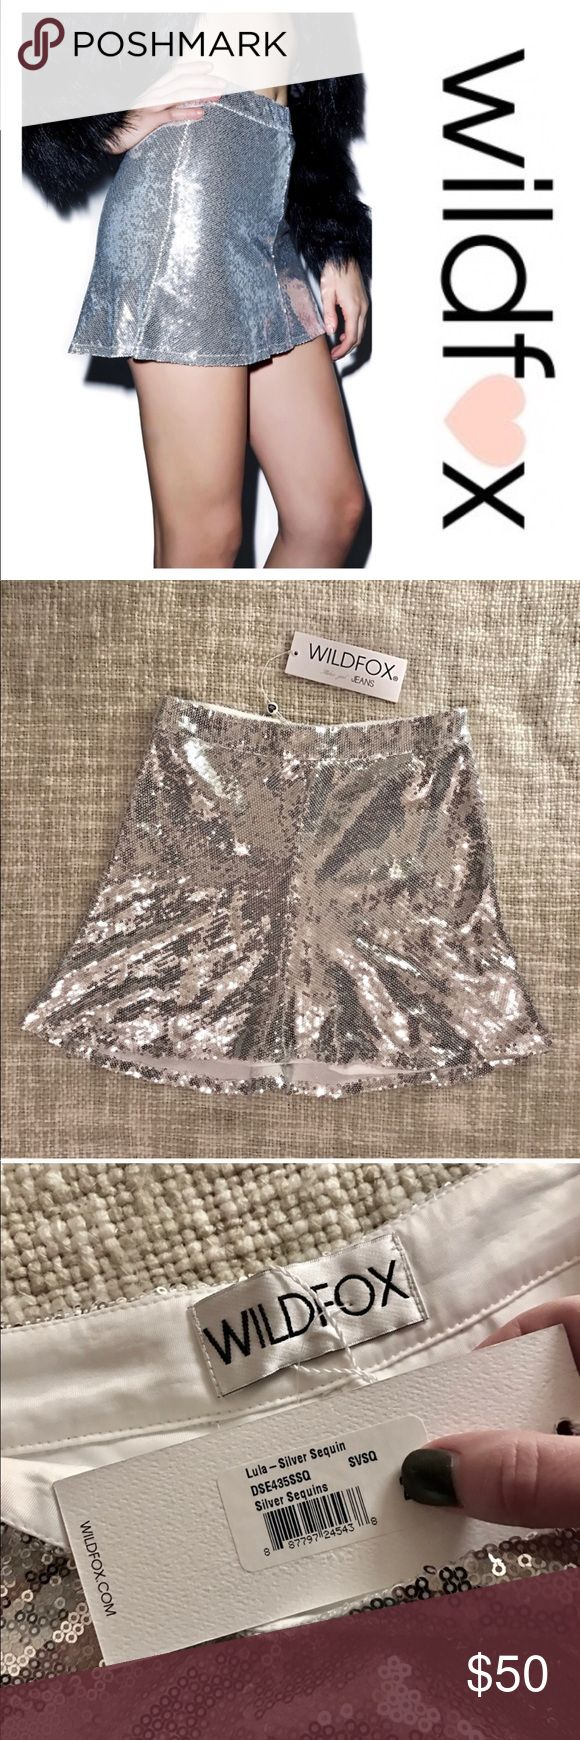 Wildfox Silver Sequin Lula Skirt Wildfox Couture Lula Sequin Skirt - skip the lines in this sparkly skirt! It's high waisted and stretchy with a slight A-line and positively covered in super shimmery sequins. The inner lining is super soft so you can party all night! It feels incredibly well made and has four vertical seams and a hidden zipper in one of them. Brand new with tags!  Materials: 97% Polyester, 3% Spandex Dry Clean Only Model wears 0 and is 5'9 Wildfox Skirts Mini